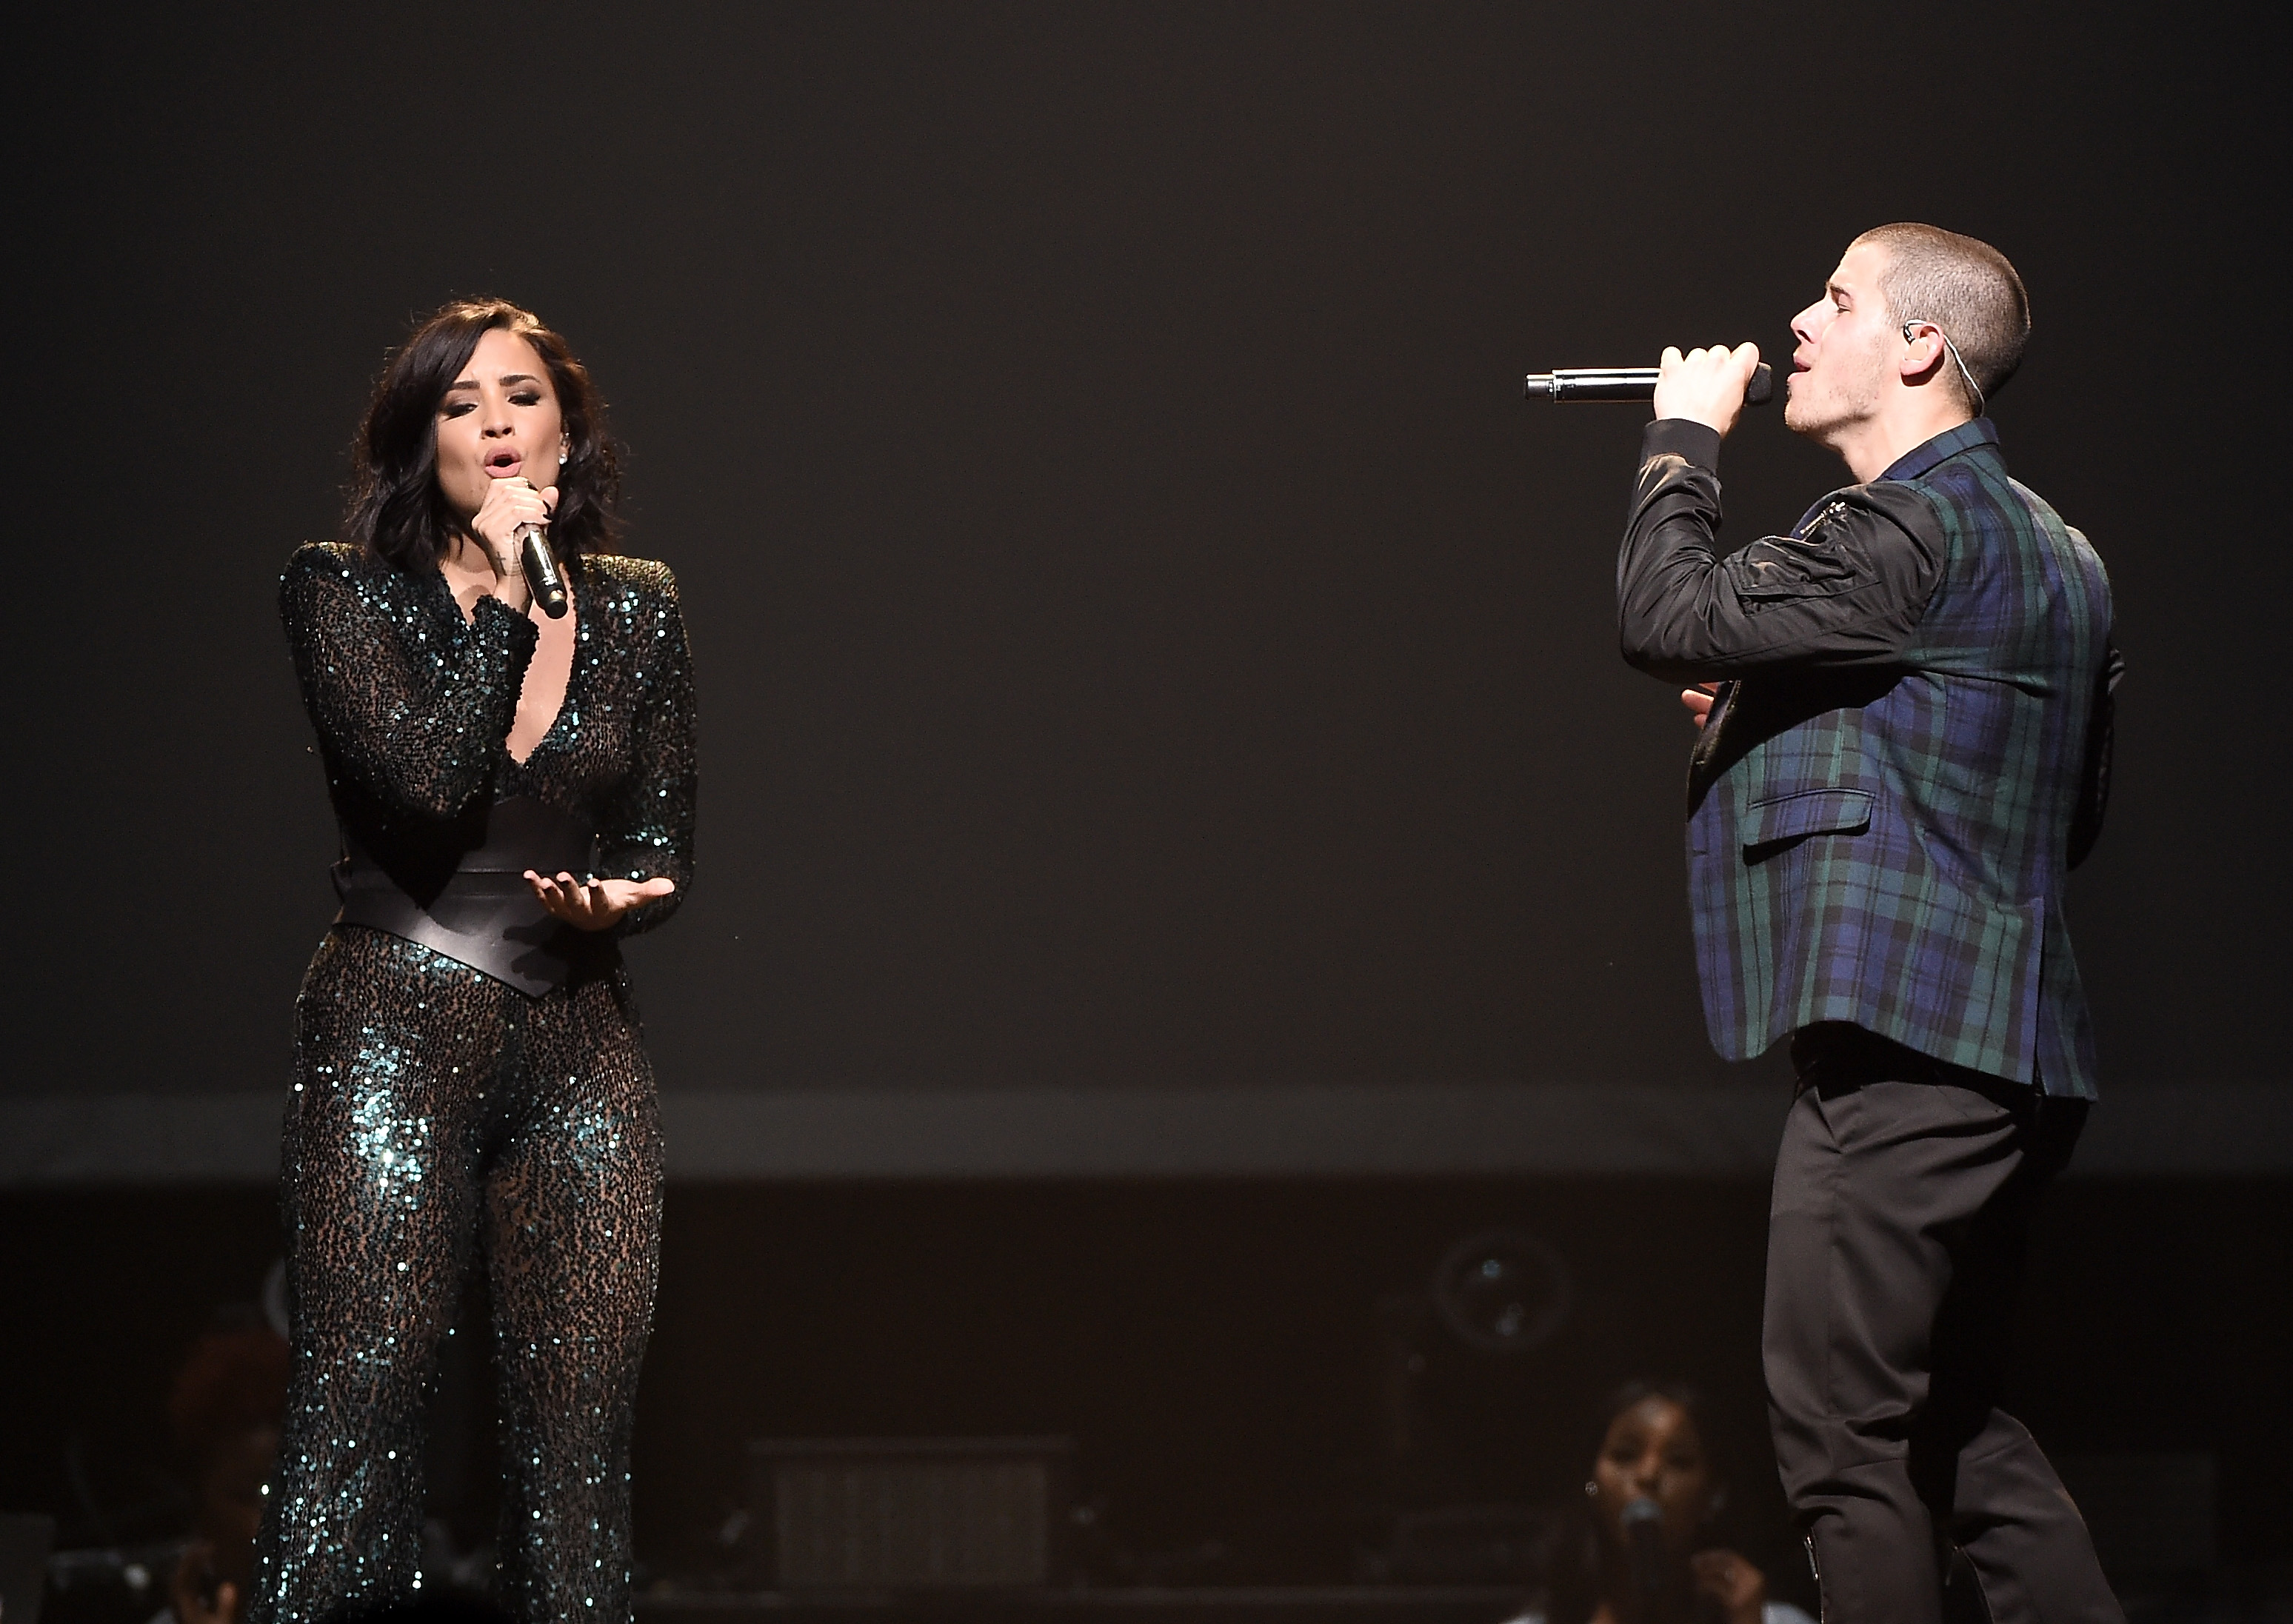 Demi Lovato & Nick Jonas In Concert - Brooklyn, NY